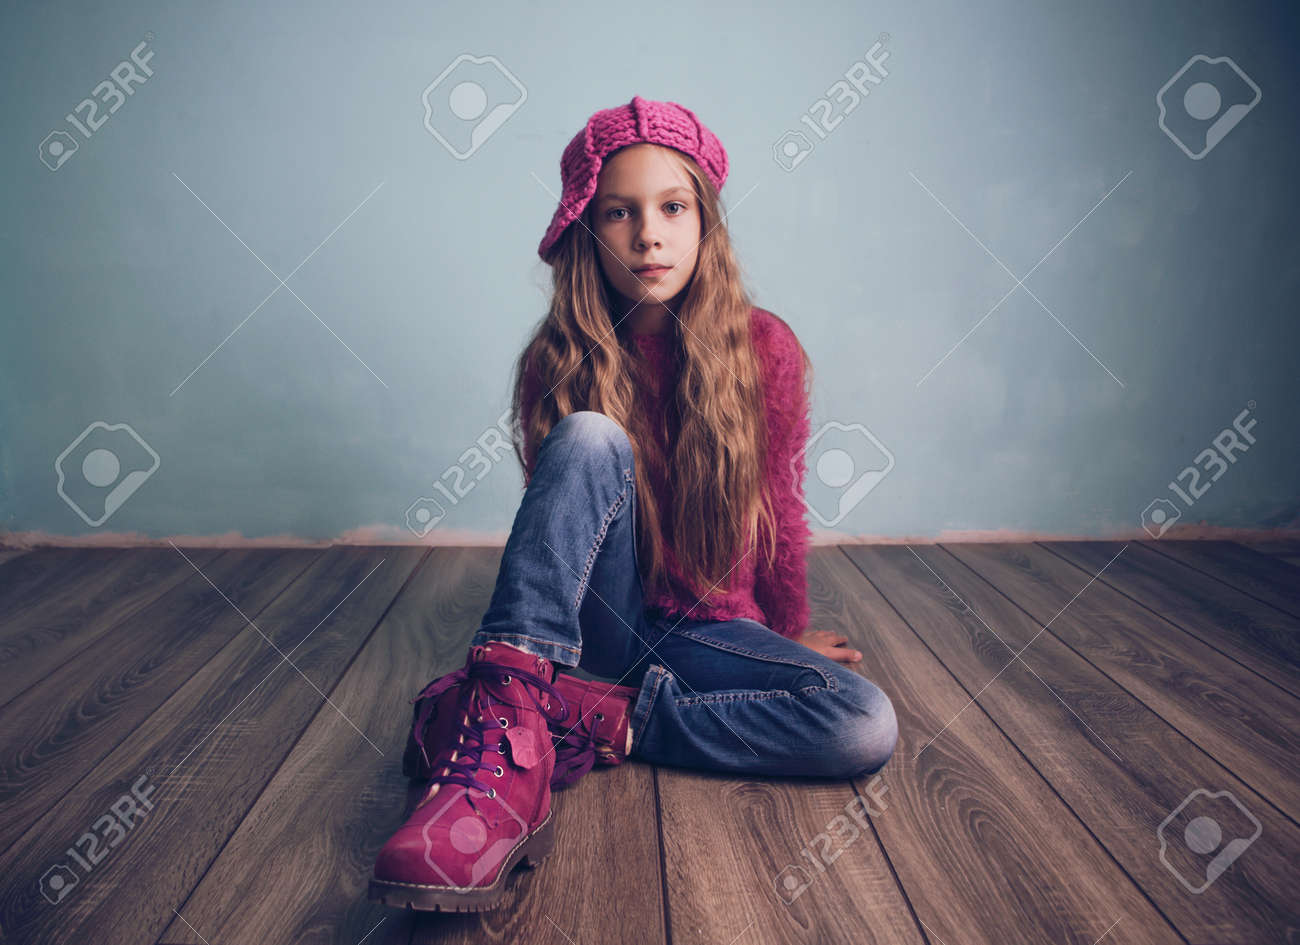 Cute Clothes And Shoes